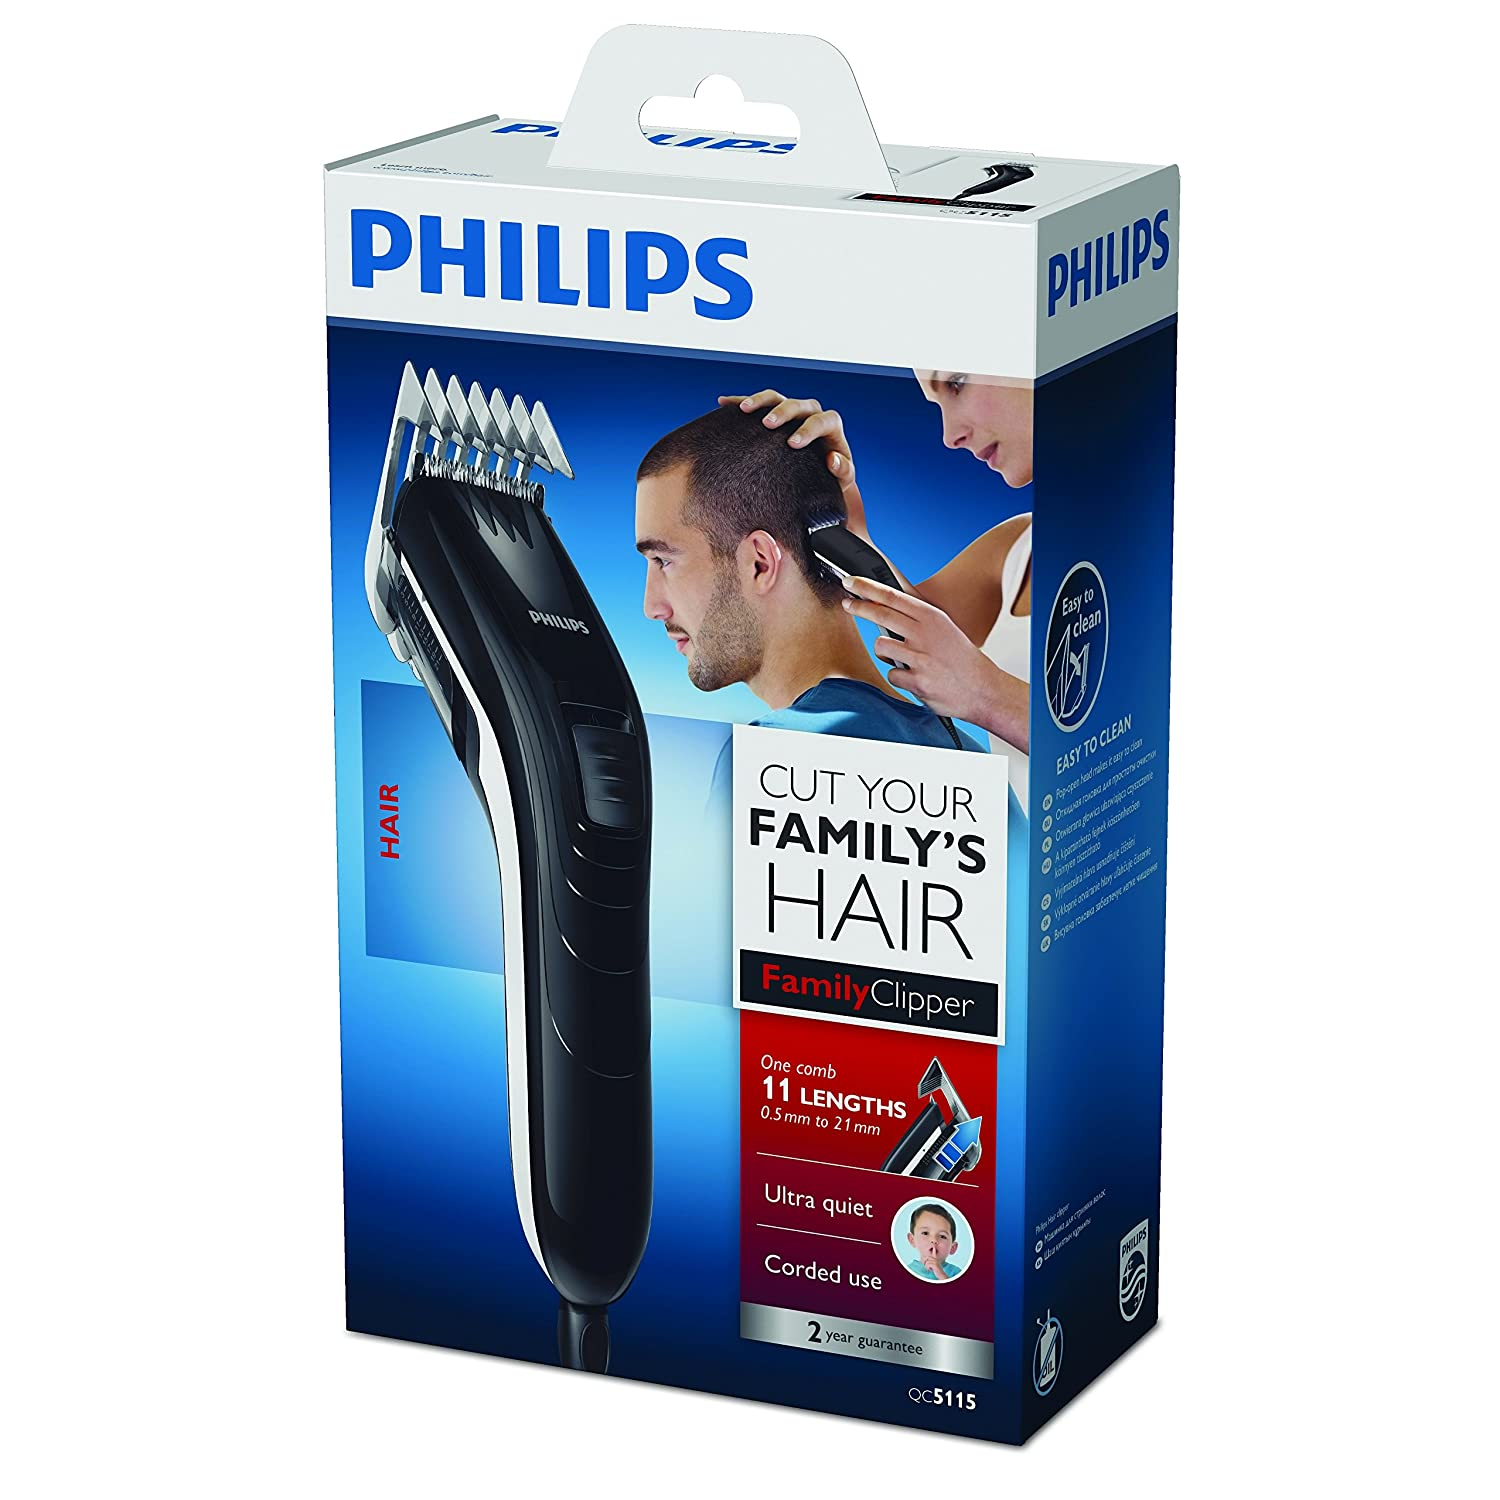 Philips Series 3000 Hair Trimmer 11 Lengths QC5115 15 Black  Amazon.co.uk   Health   Personal Care d73def7c2b